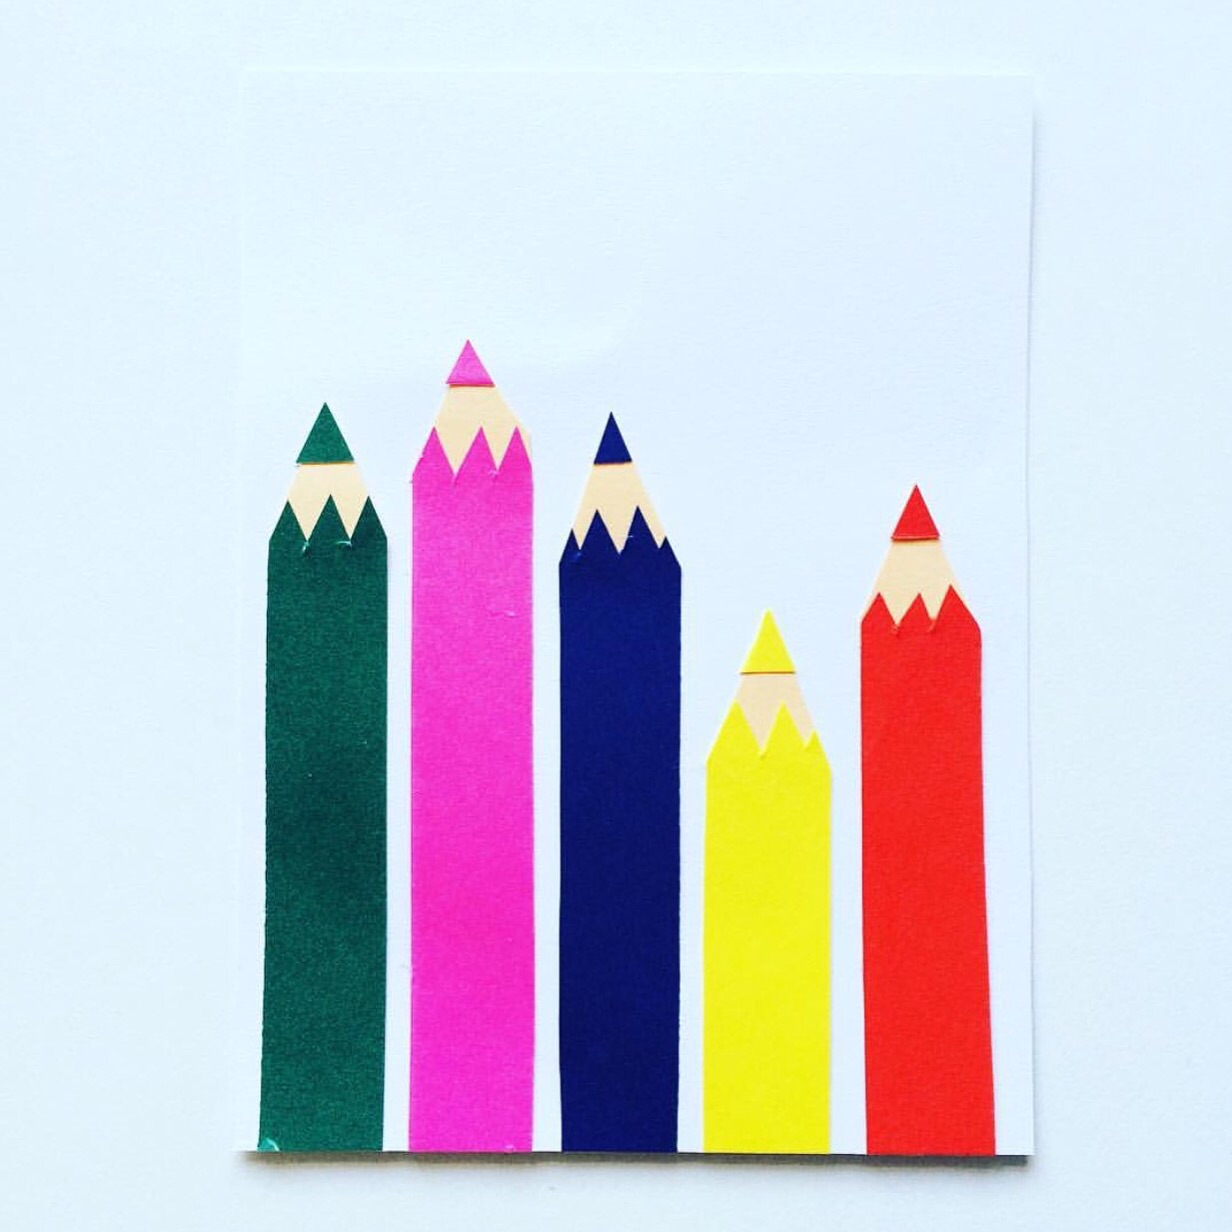 Image courtesy of @366cards on Instagram - Pencil Card to celebrate National Pencil Day